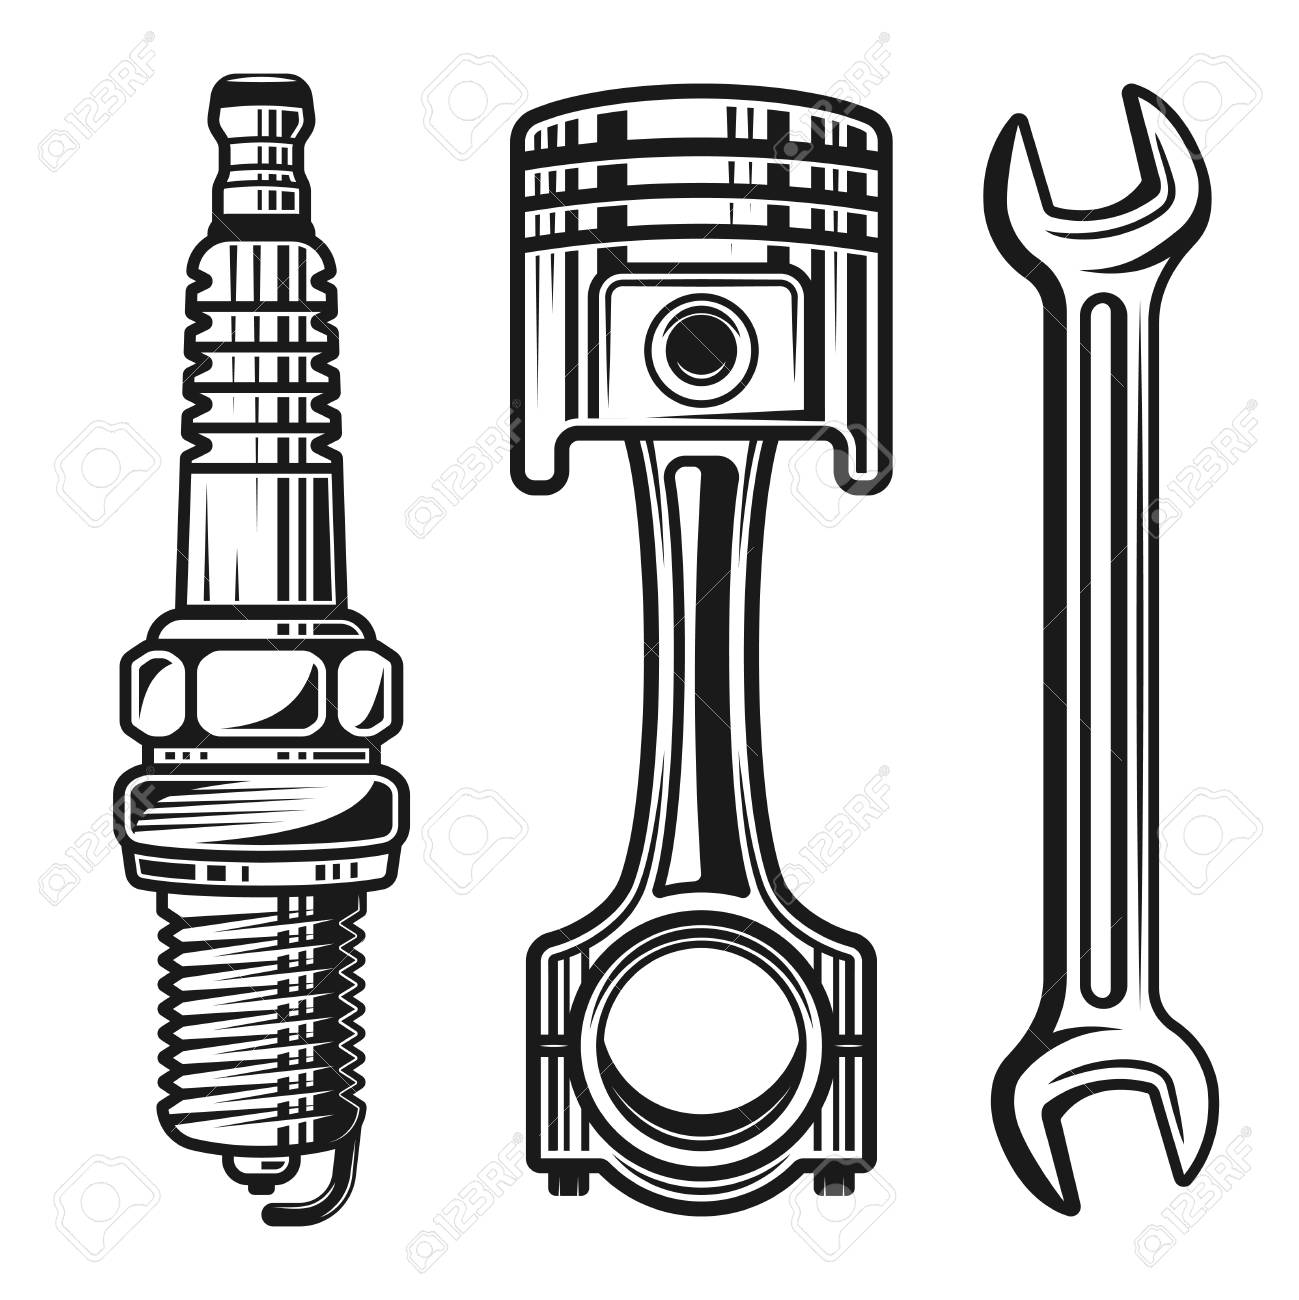 Car or motorcycle repair parts set of vector detailed objects and design elements in monochrome style isolated on white background - 99019438